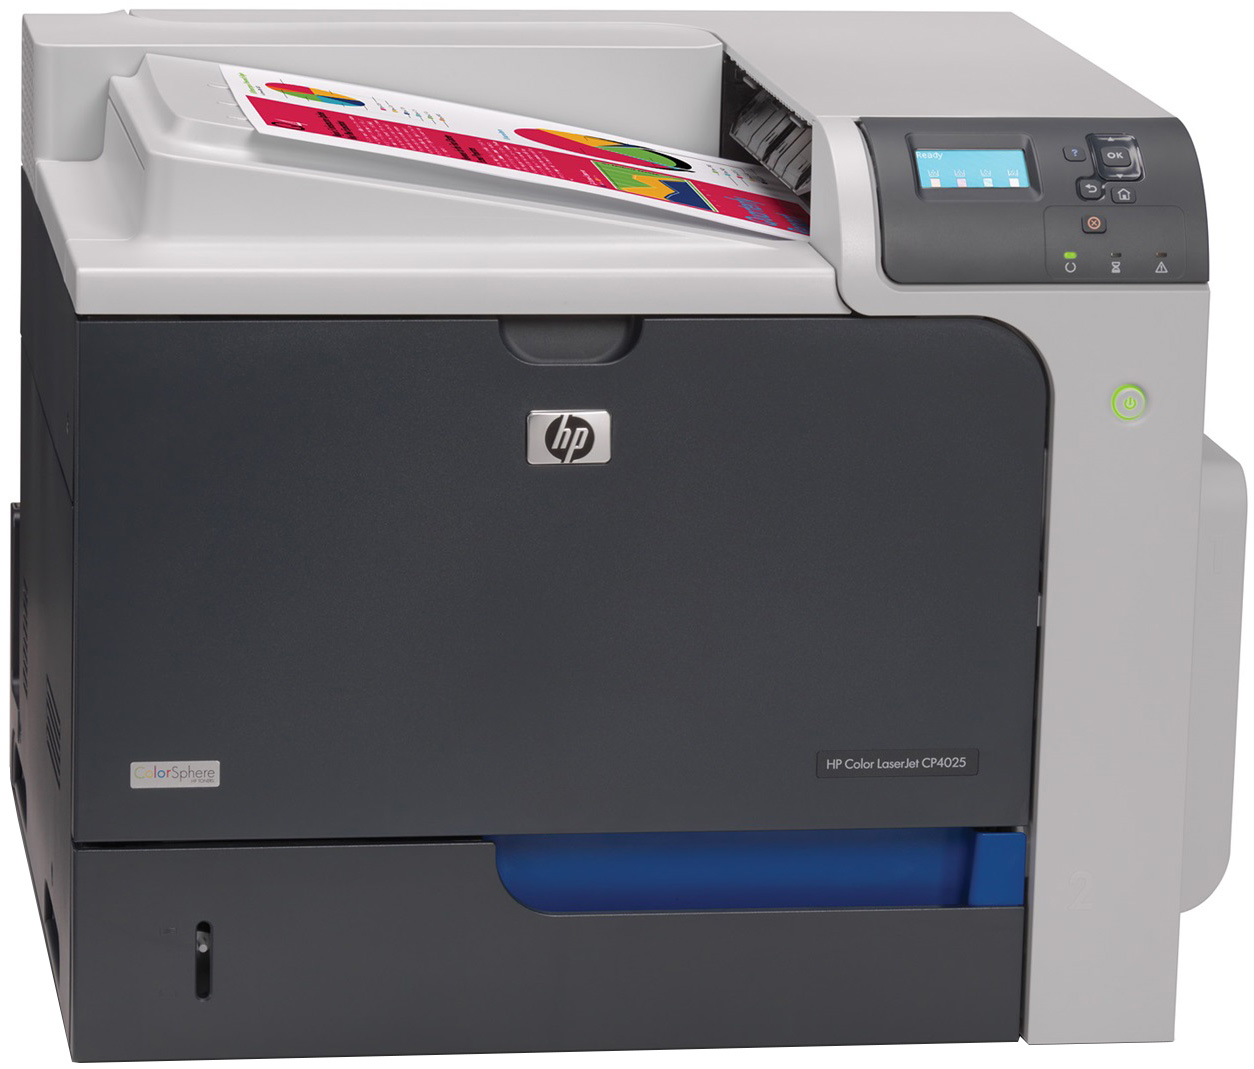 HP Color LaserJet Enterprise CP4025dn CC490A